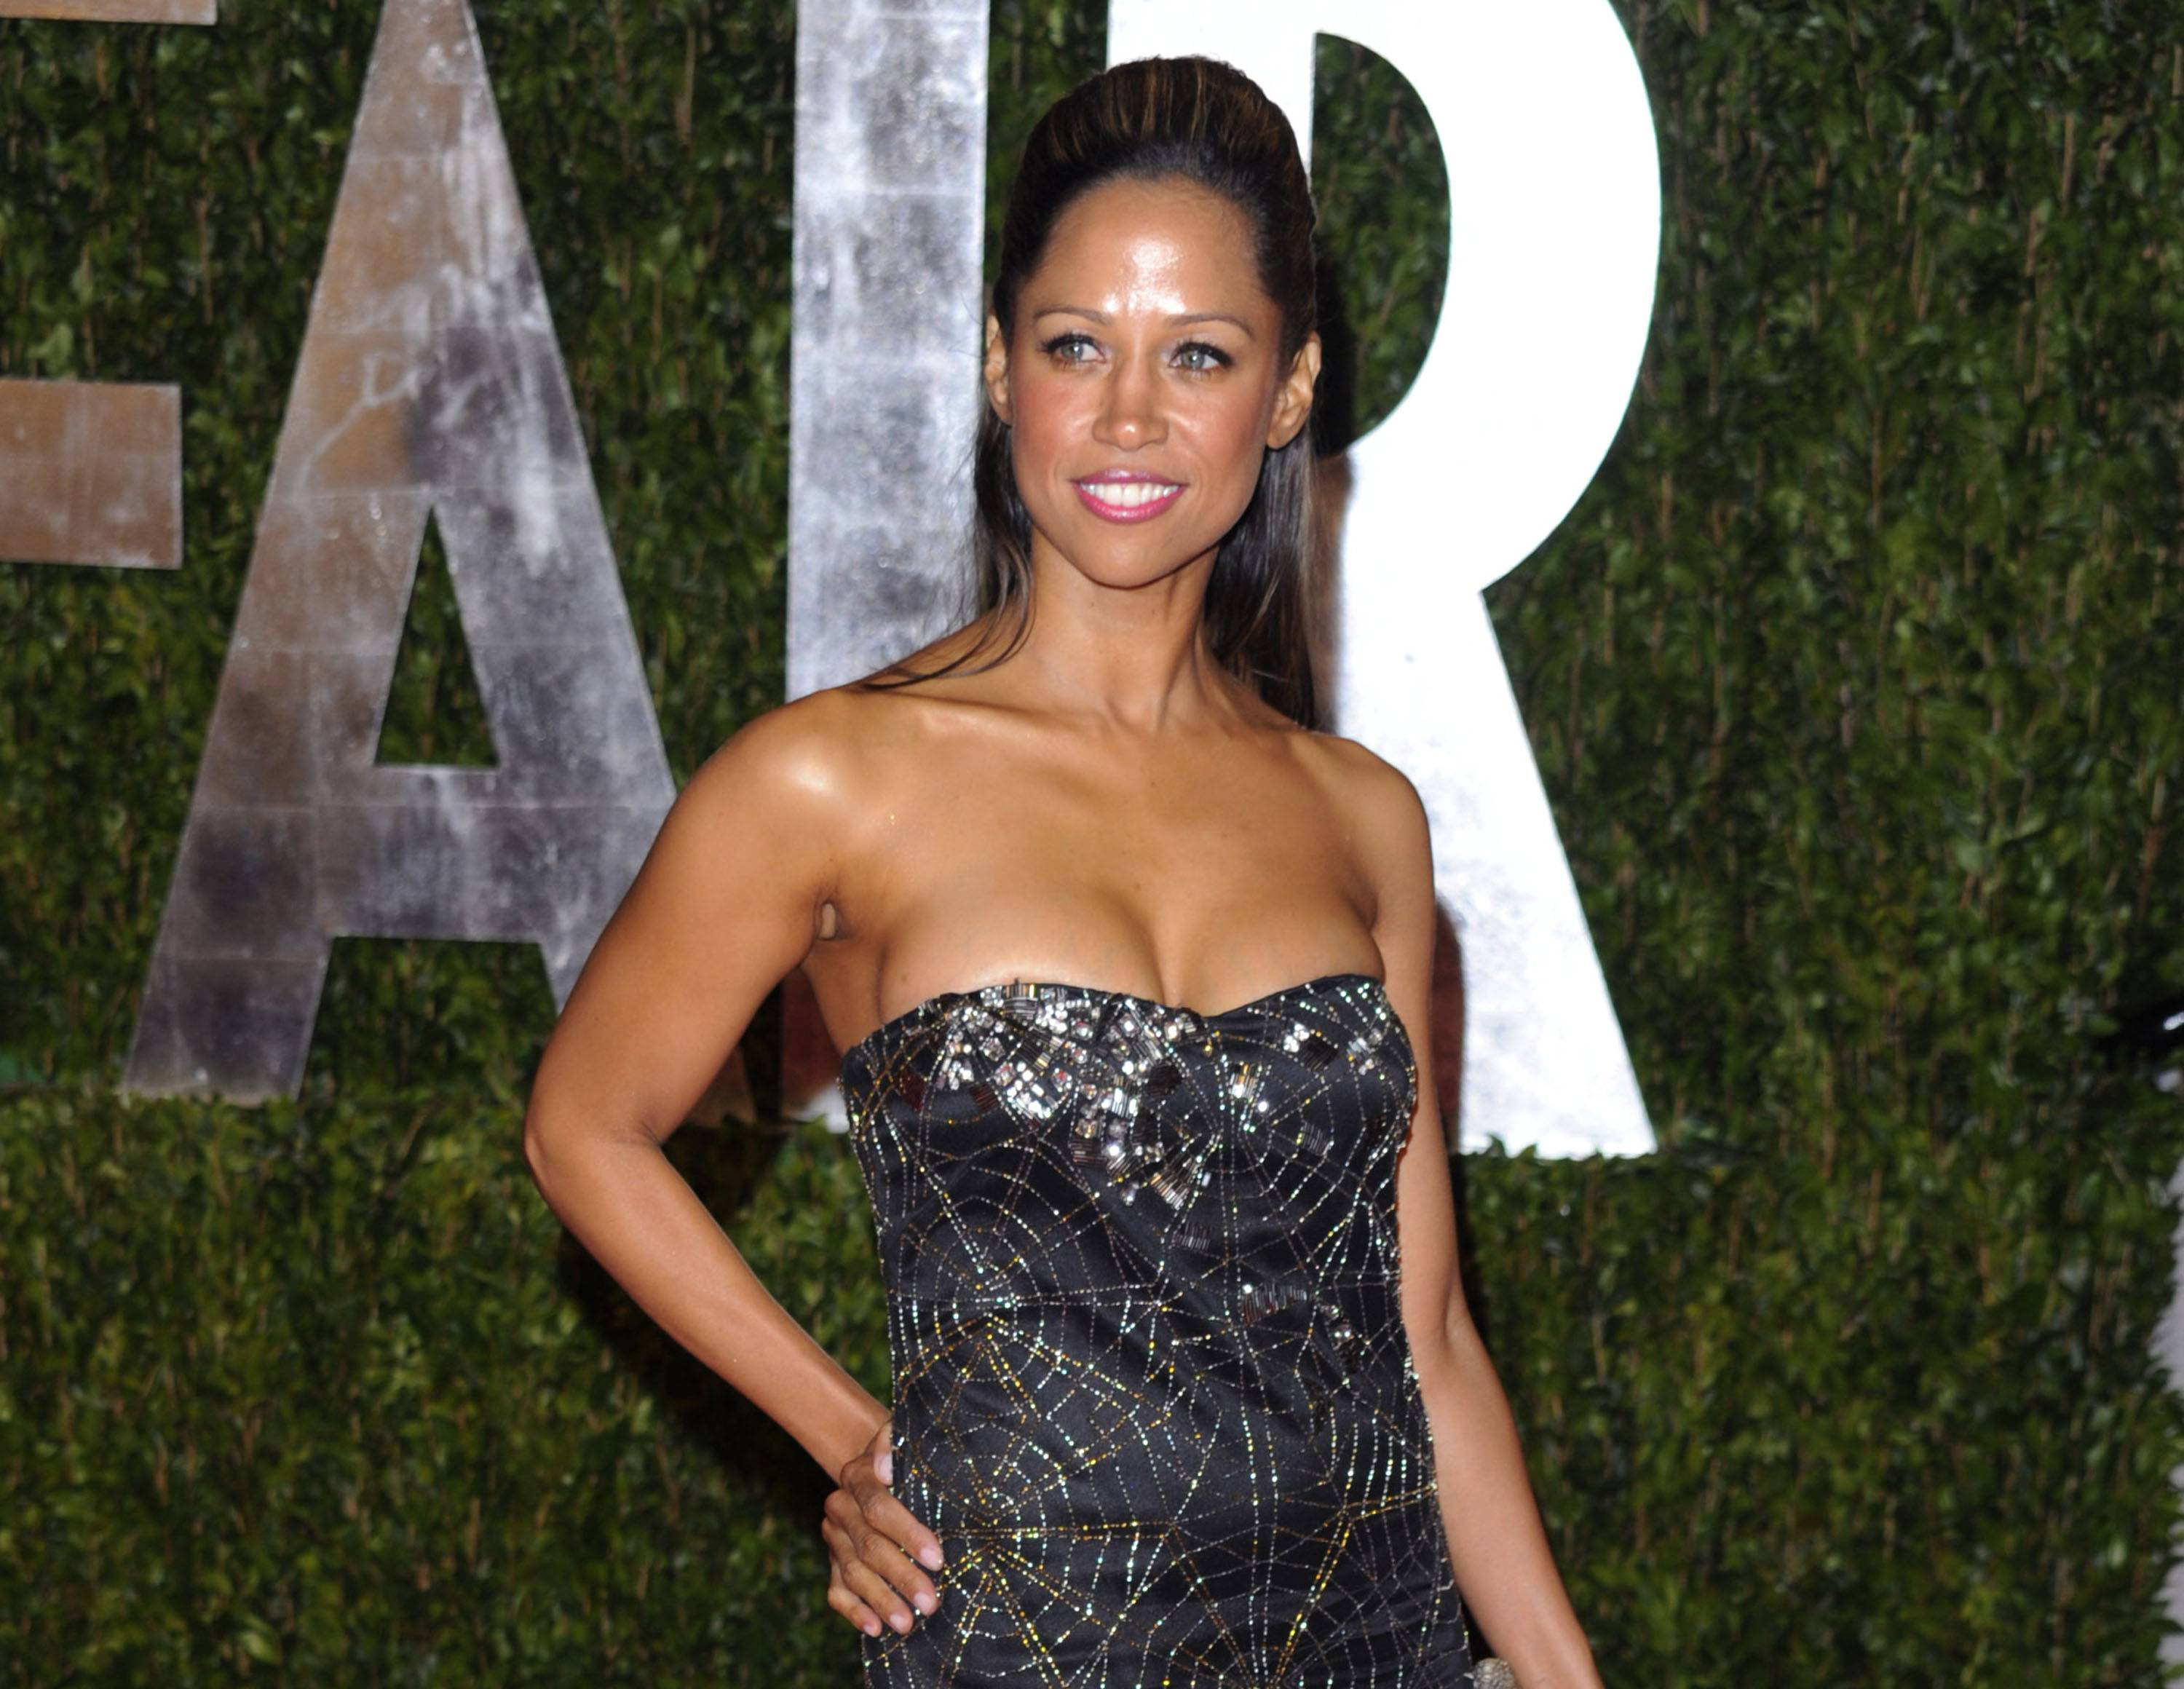 "Fox News Channel is bringing on actress Stacey Dash as a paid contributor. Dash, known for her roles in the ""Clueless"" movie and television series, got on the political radar when she endorsed Mitt Romney over Barack Obama in the last presidential election. Fox News programming executive Bill Shine said Wednesday that Dash will offer cultural analysis and commentary across several of the network's programs."